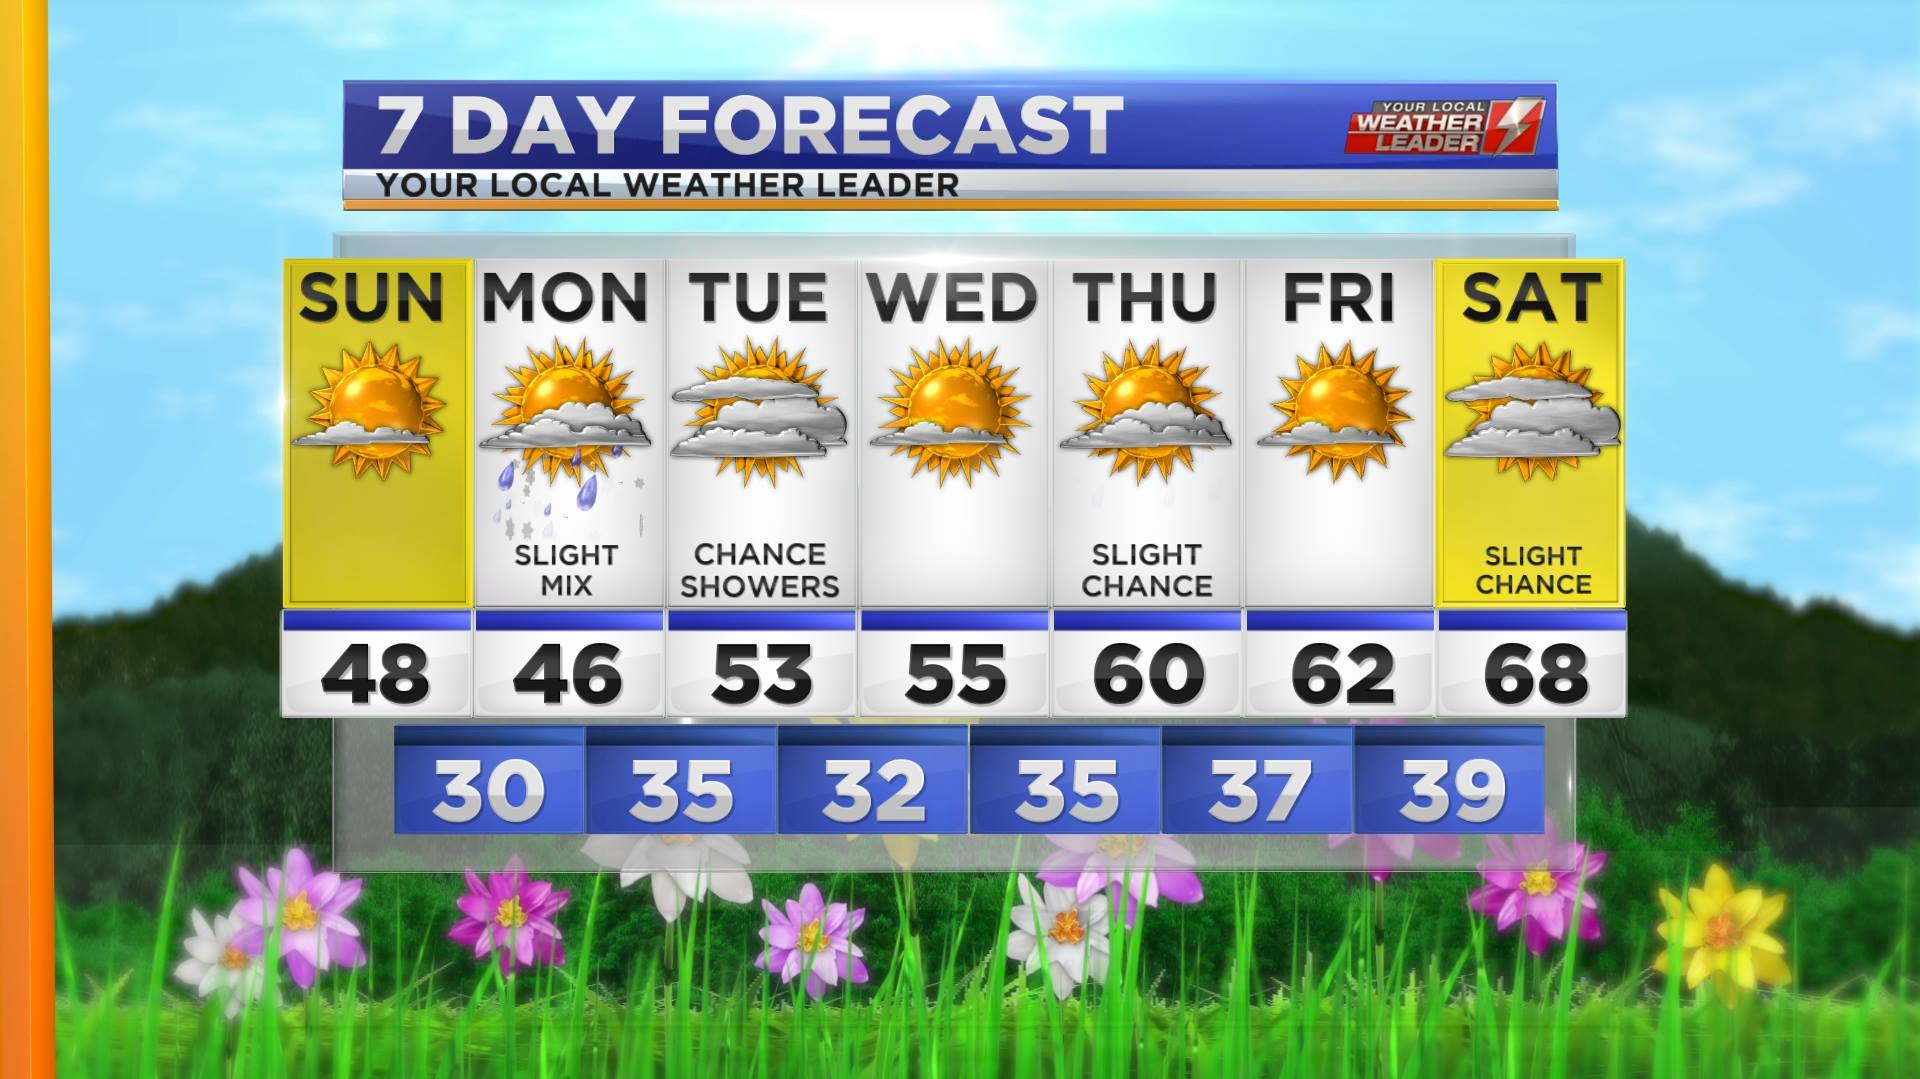 Your 7-day Forecast for Sunday 08 April 2018